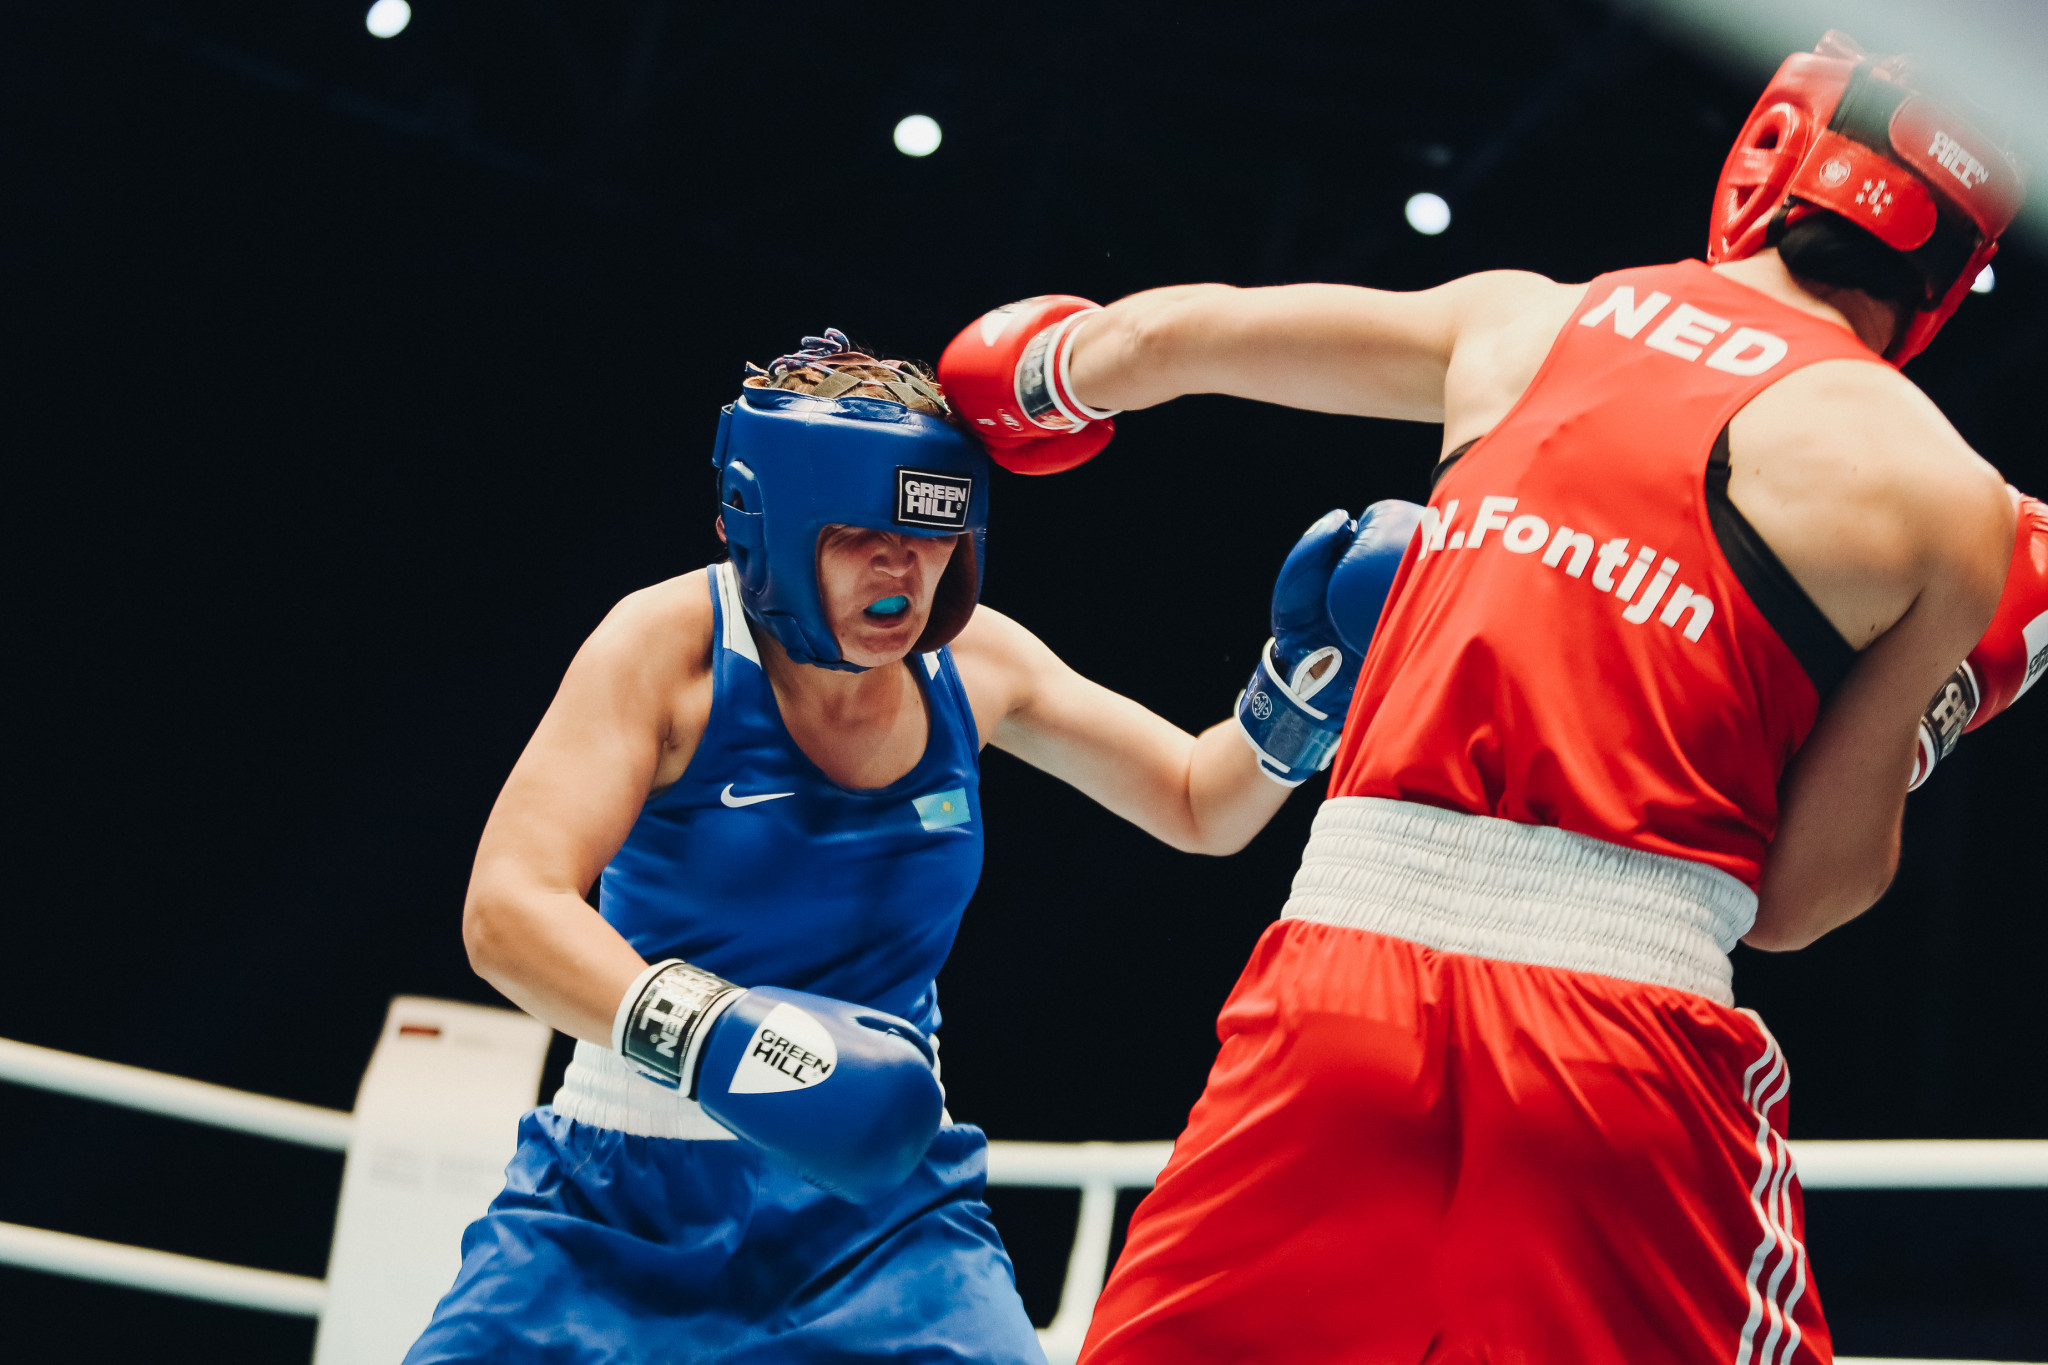 Rio 2016 Olympic silver medallist Nouchka Fontijn of the Netherlands was another unanimous victor, getting past Akerke Bakhytzhan of Kazakhstan ©AIBA